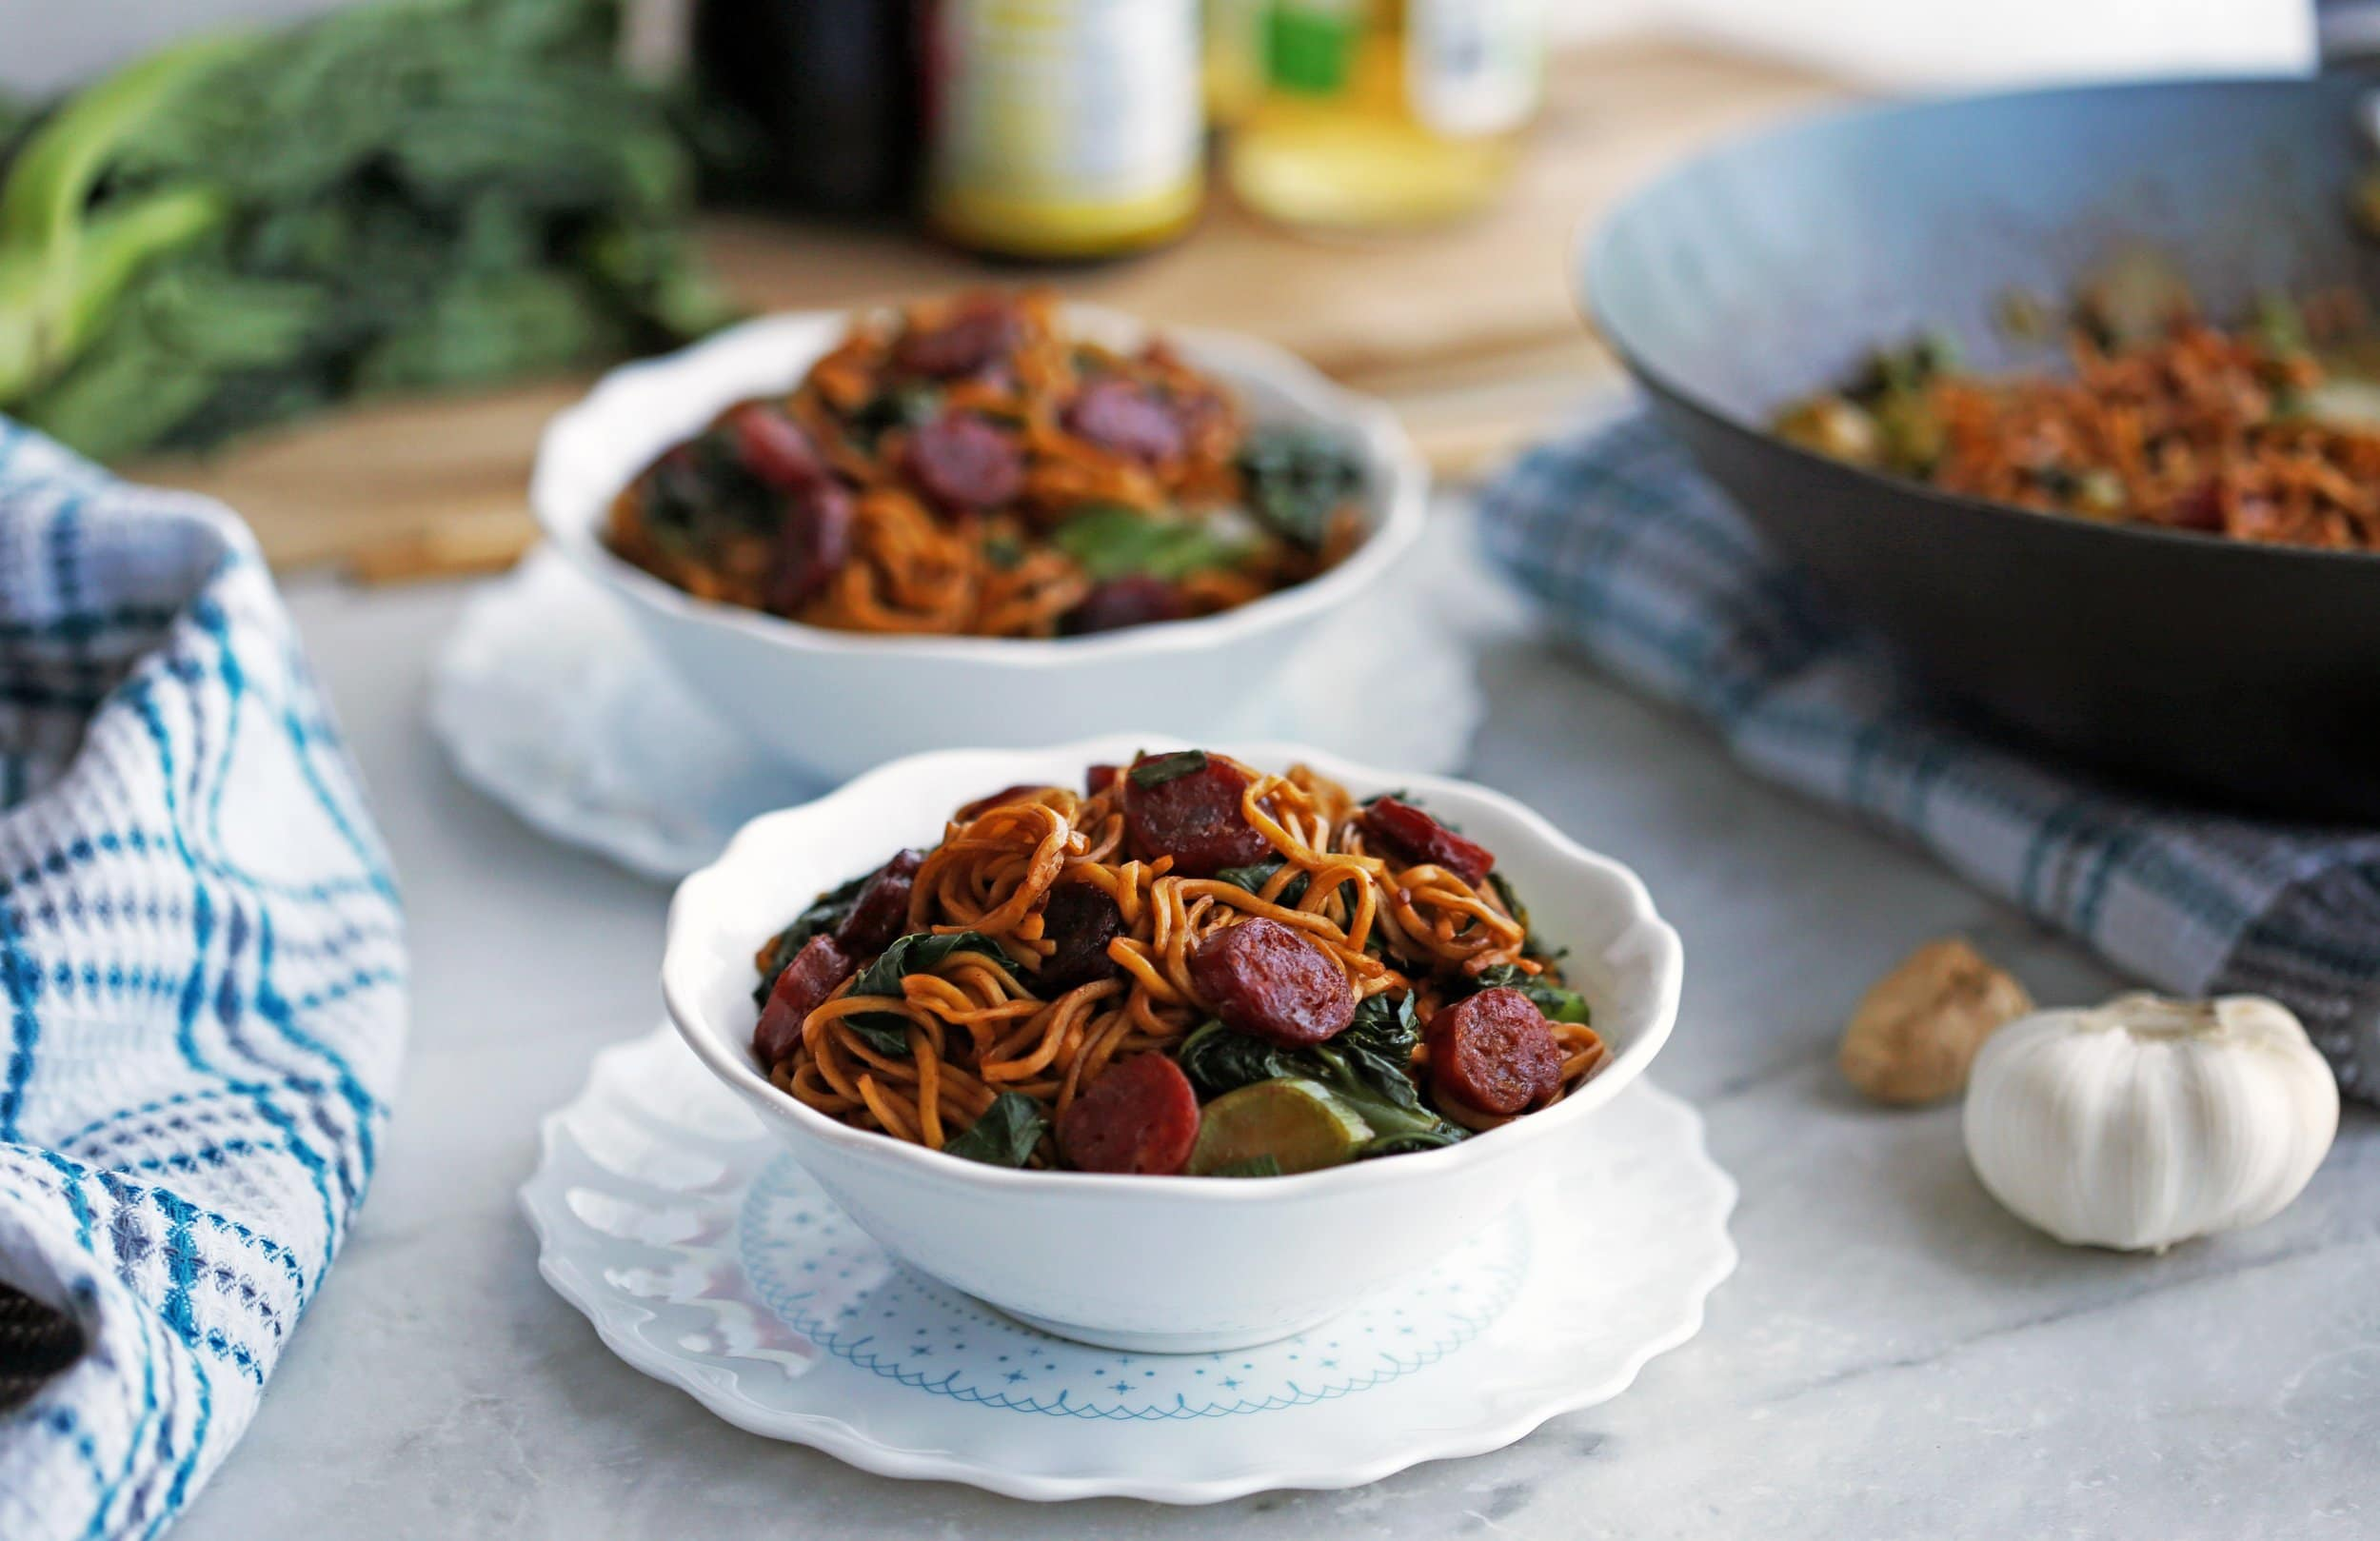 Two bowls of Lo mein noodles with Chinese sausage (lap cheong) and gai lan (Chinese broccoli).